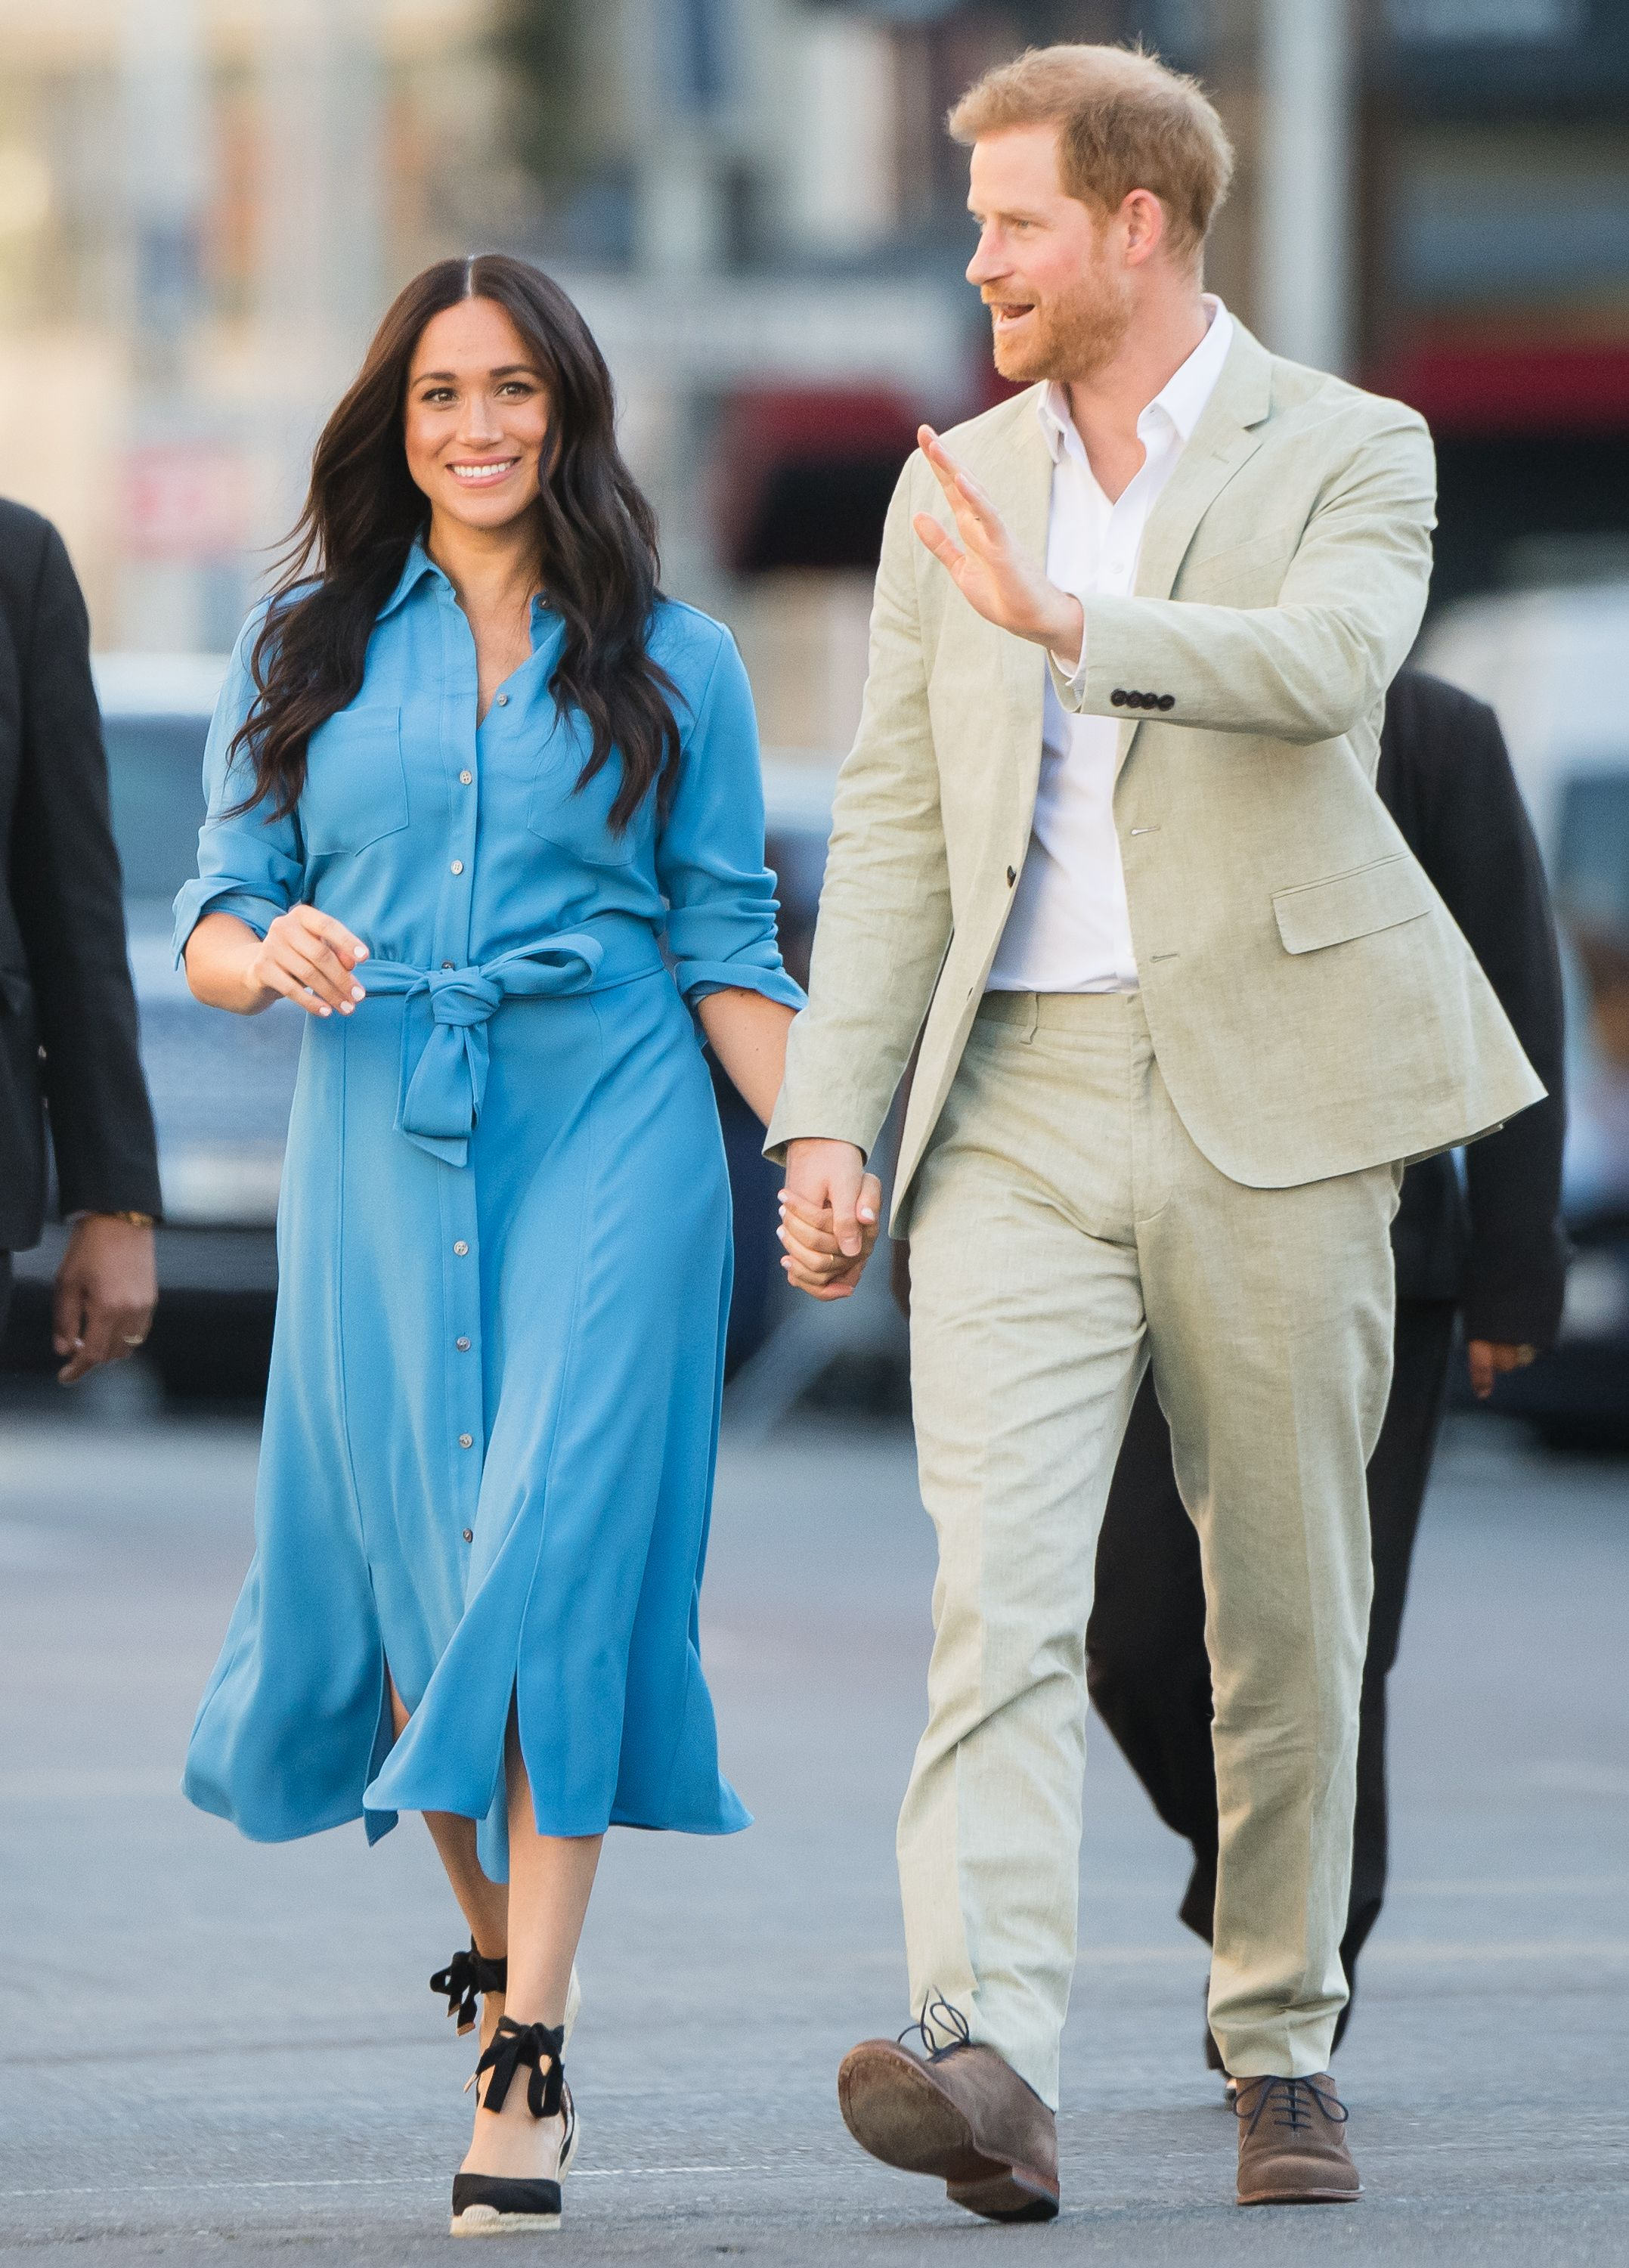 Why Archie Wasn't at Meghan Markle and Prince Harry's Events on Their First Day of the Royal Tour